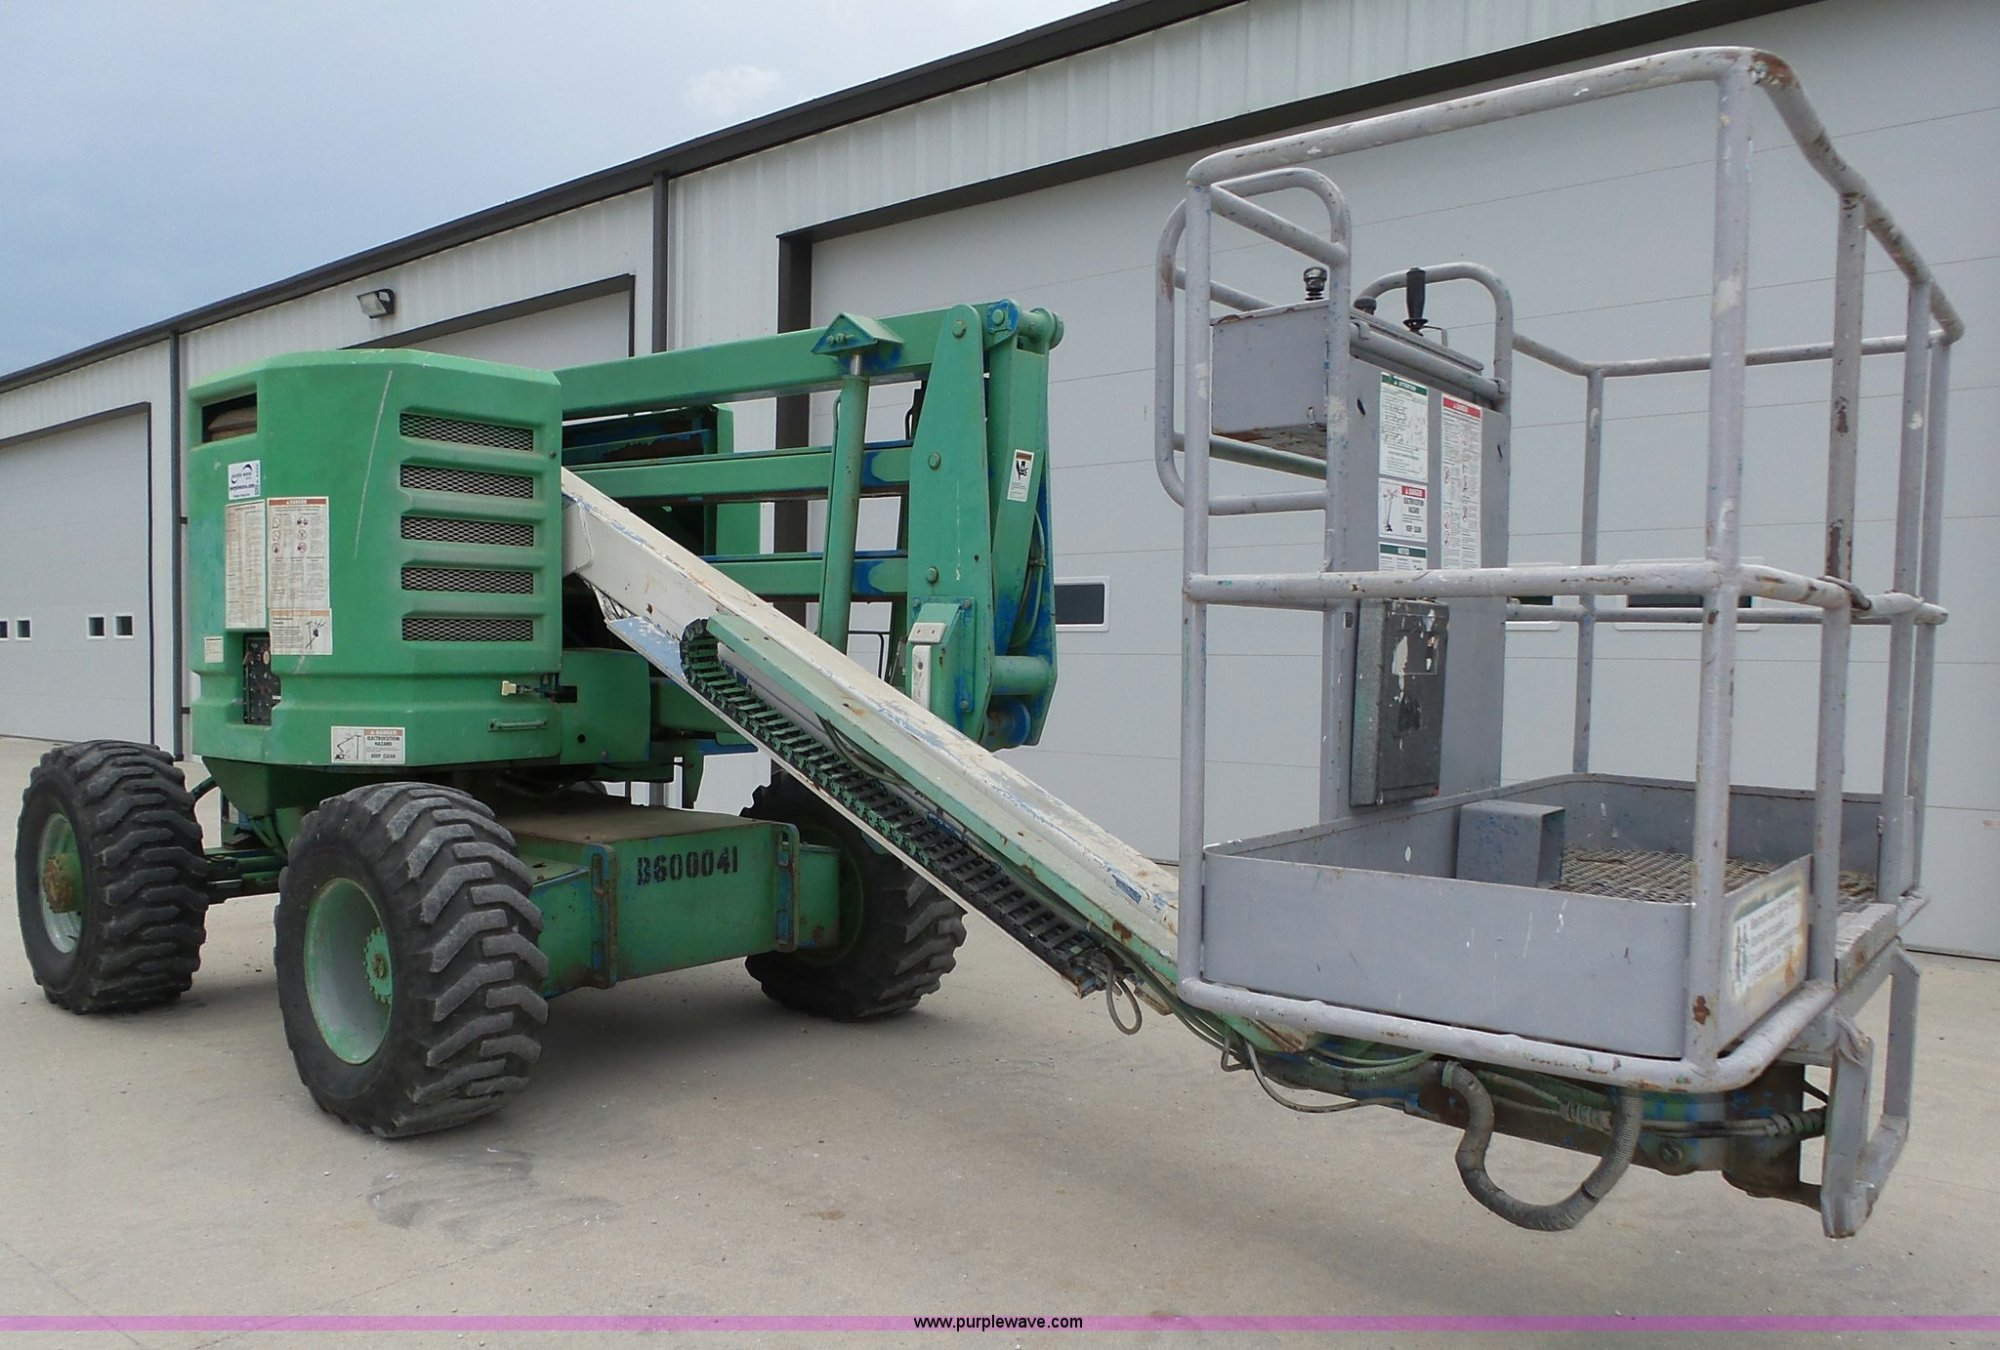 hight resolution of k8425 image for item k8425 1996 genie z45 22 boom lift